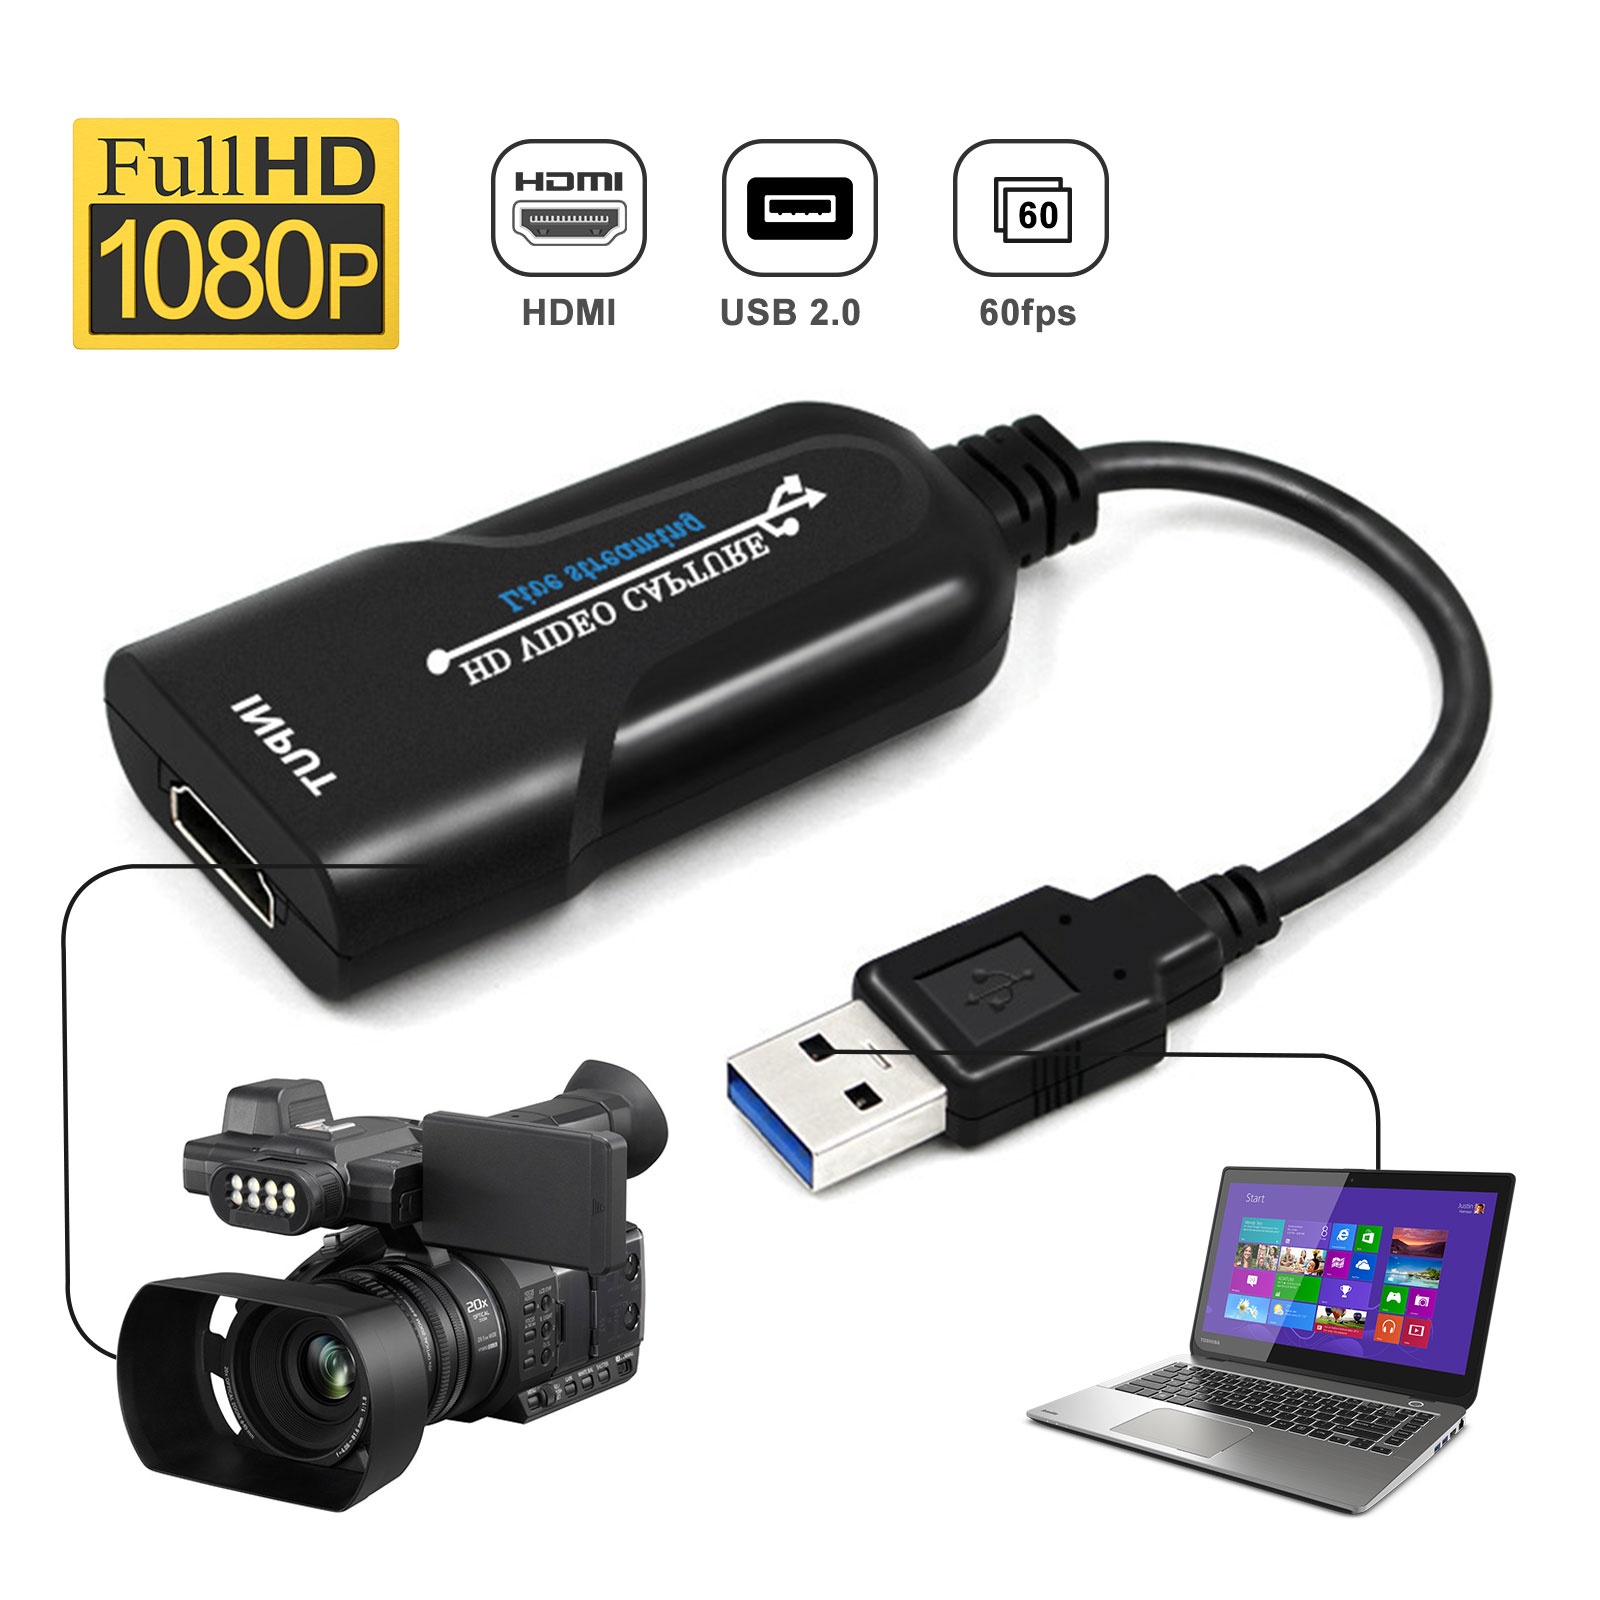 Video Conference or Live Broadcasting Teaching Etermal Video Capture Cards Audio Capture Adapter HDMI to USB 2.0 High Definition 1080p 30fps Record Directly to Computer for Gaming Streaming